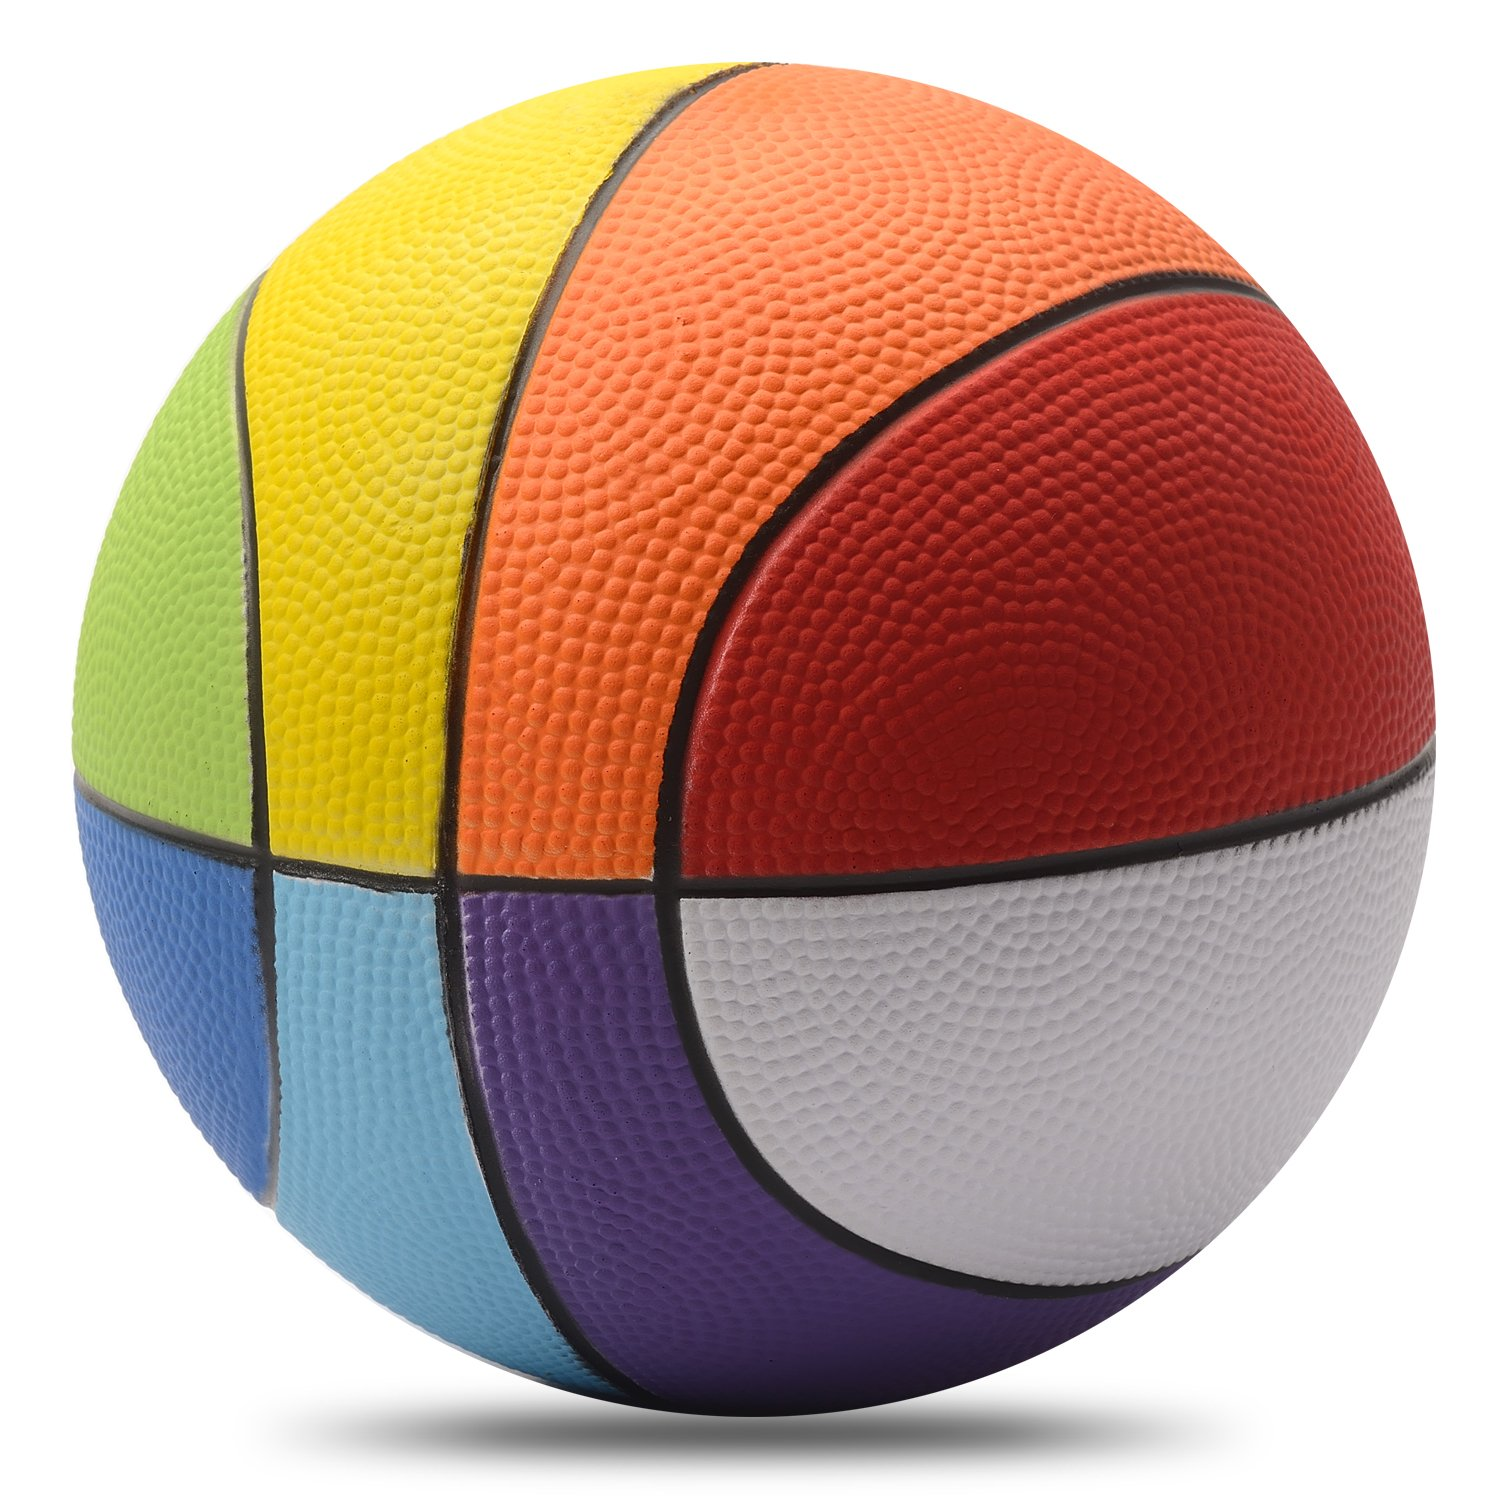 Chastep 8 Inch Foam Sports Ball, Rainbow Basketball, Safe & Soft Kick - Good Gift for Kids by Chastep